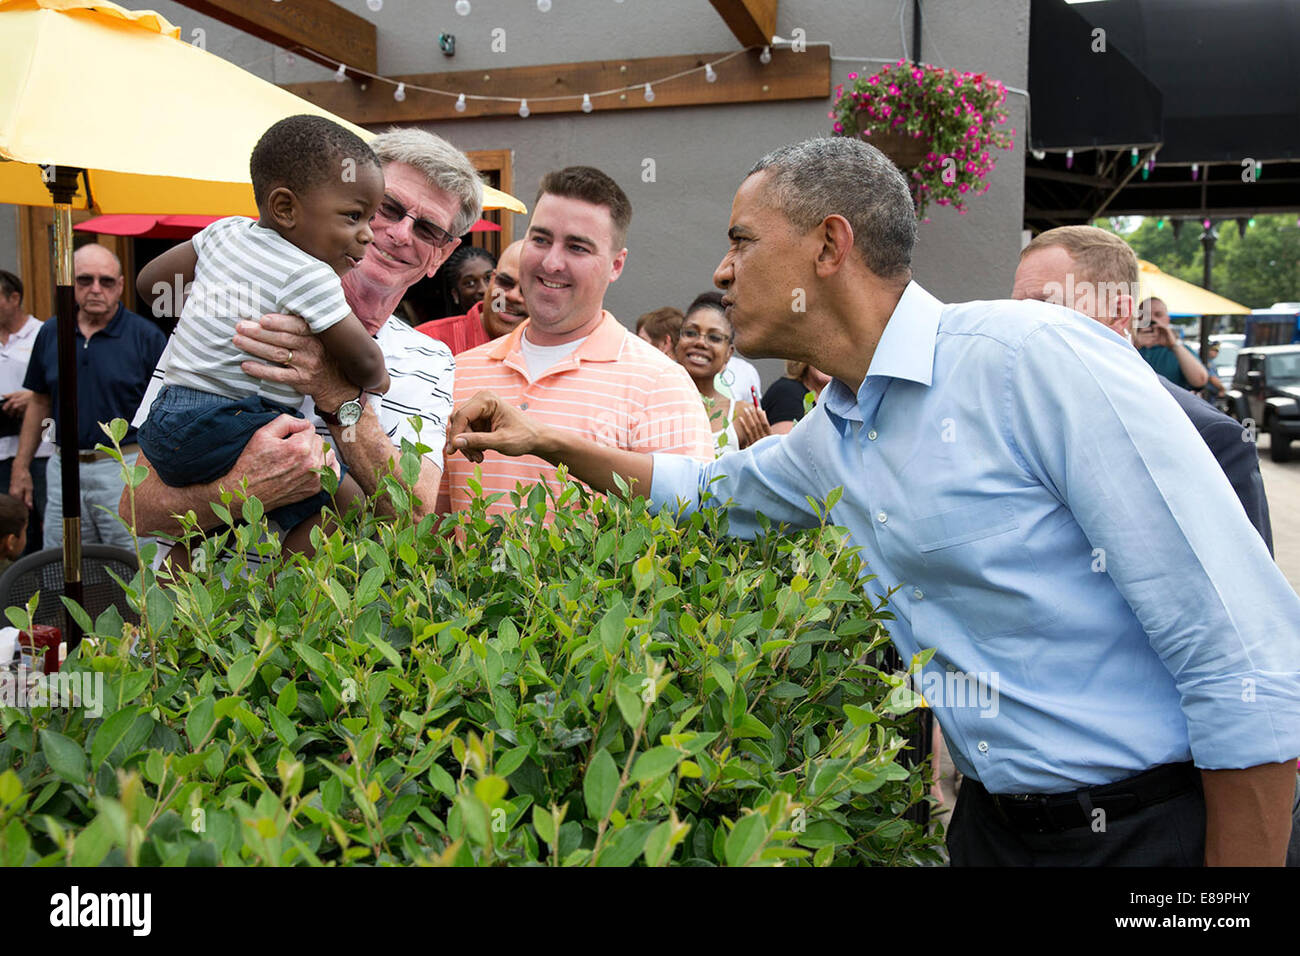 President Barack Obama jokes with a youngster while walking down Grand Avenue in St. Paul, Minn., June 26, 2014. - Stock Image